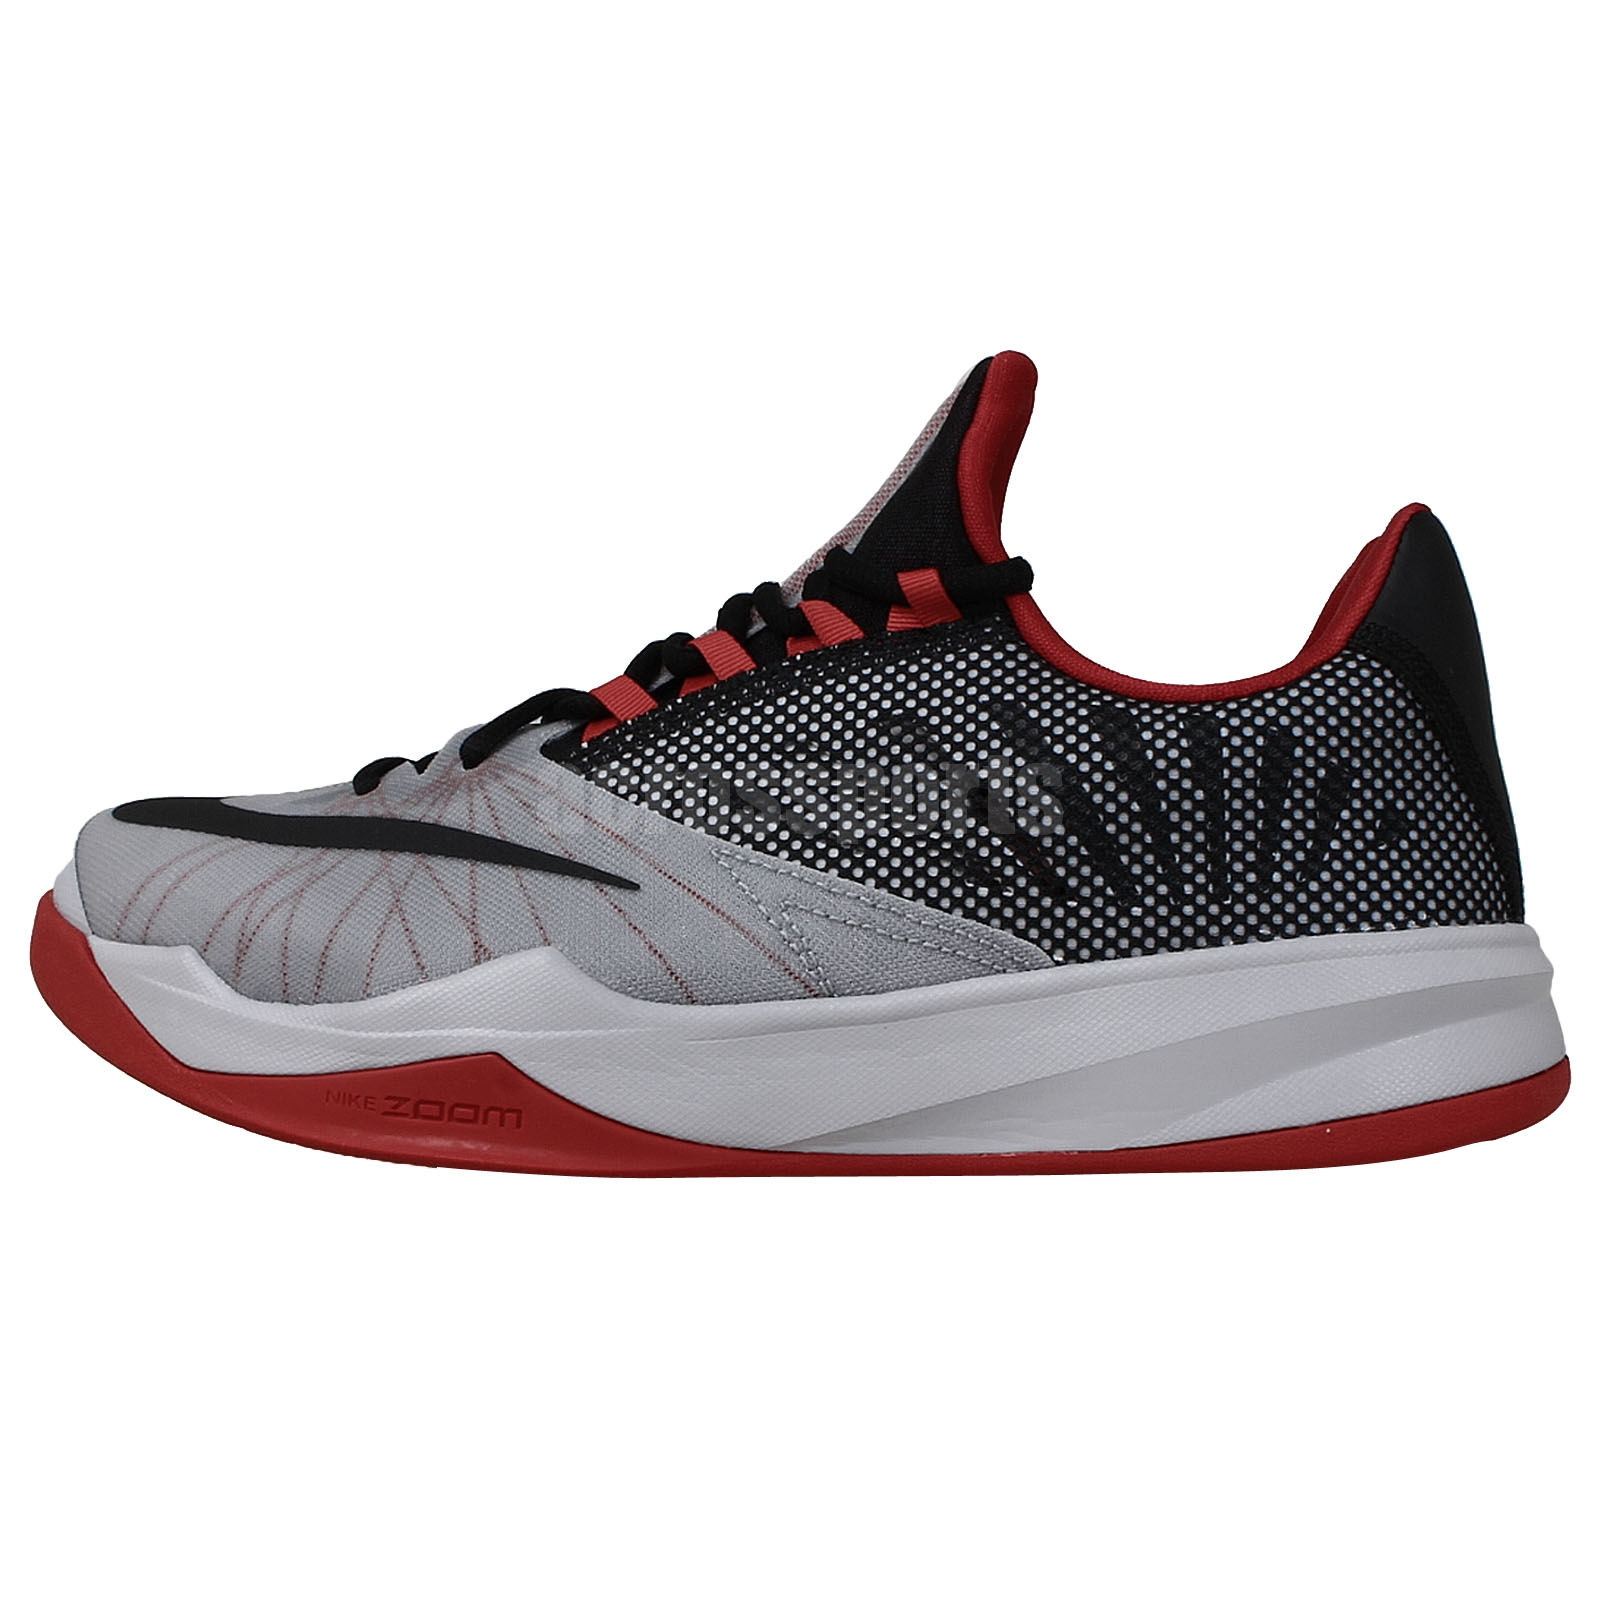 James Harden Kid Shoes: Nike Zoom Run The One EP James Harden Grey Red 2014 Mens